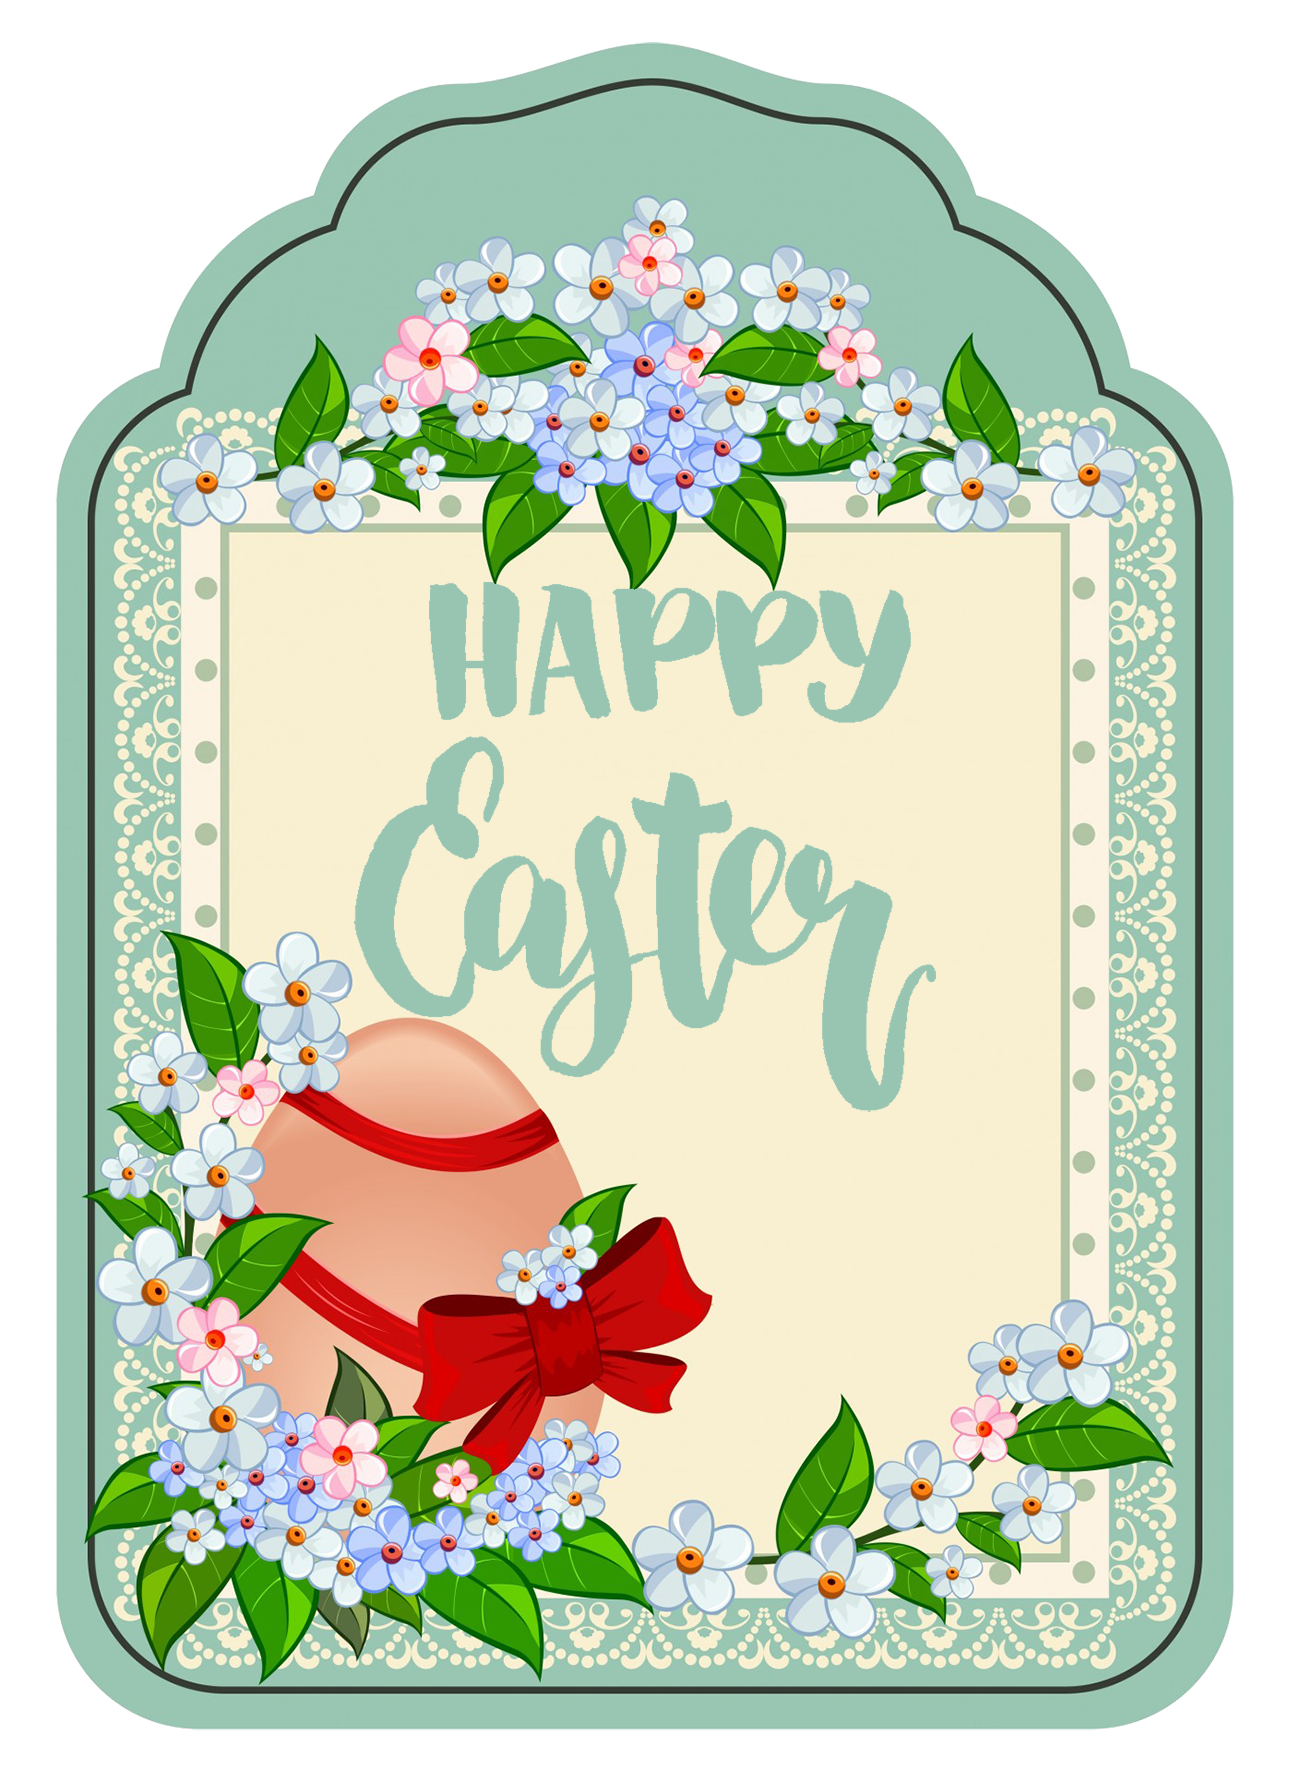 happy Easter greeting clipart